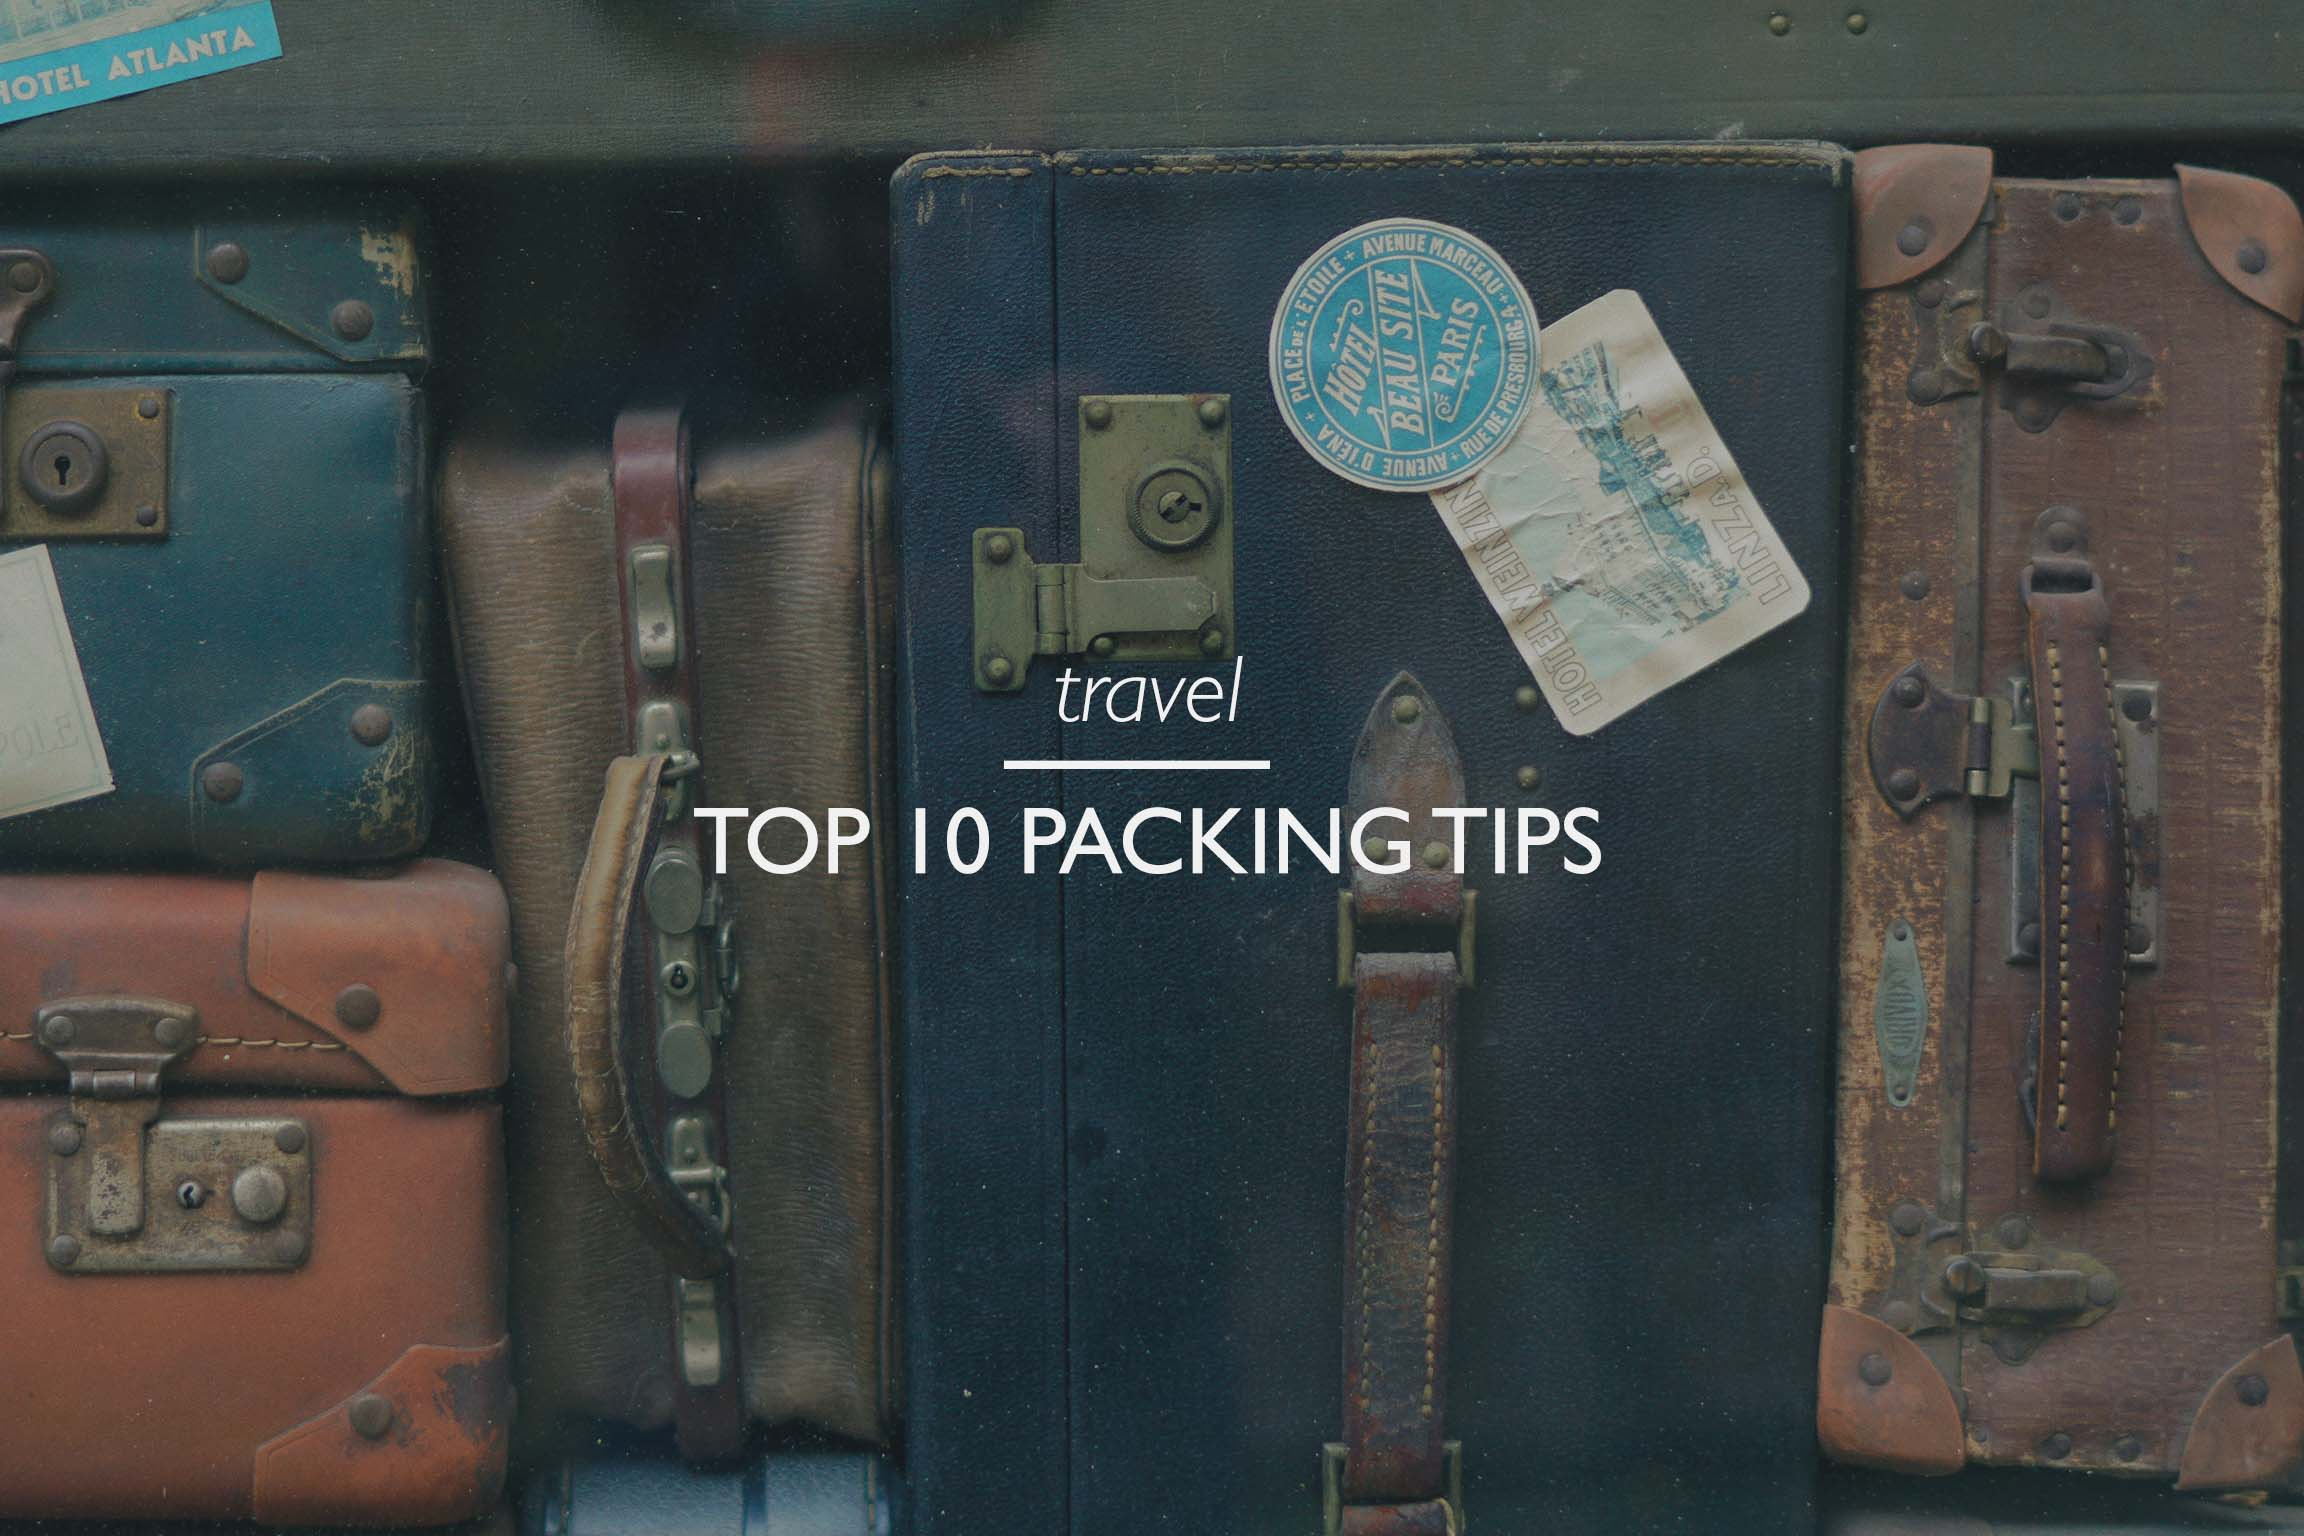 Copy of Copy of Copy of Copy of Copy of Top 10 Packing Tips